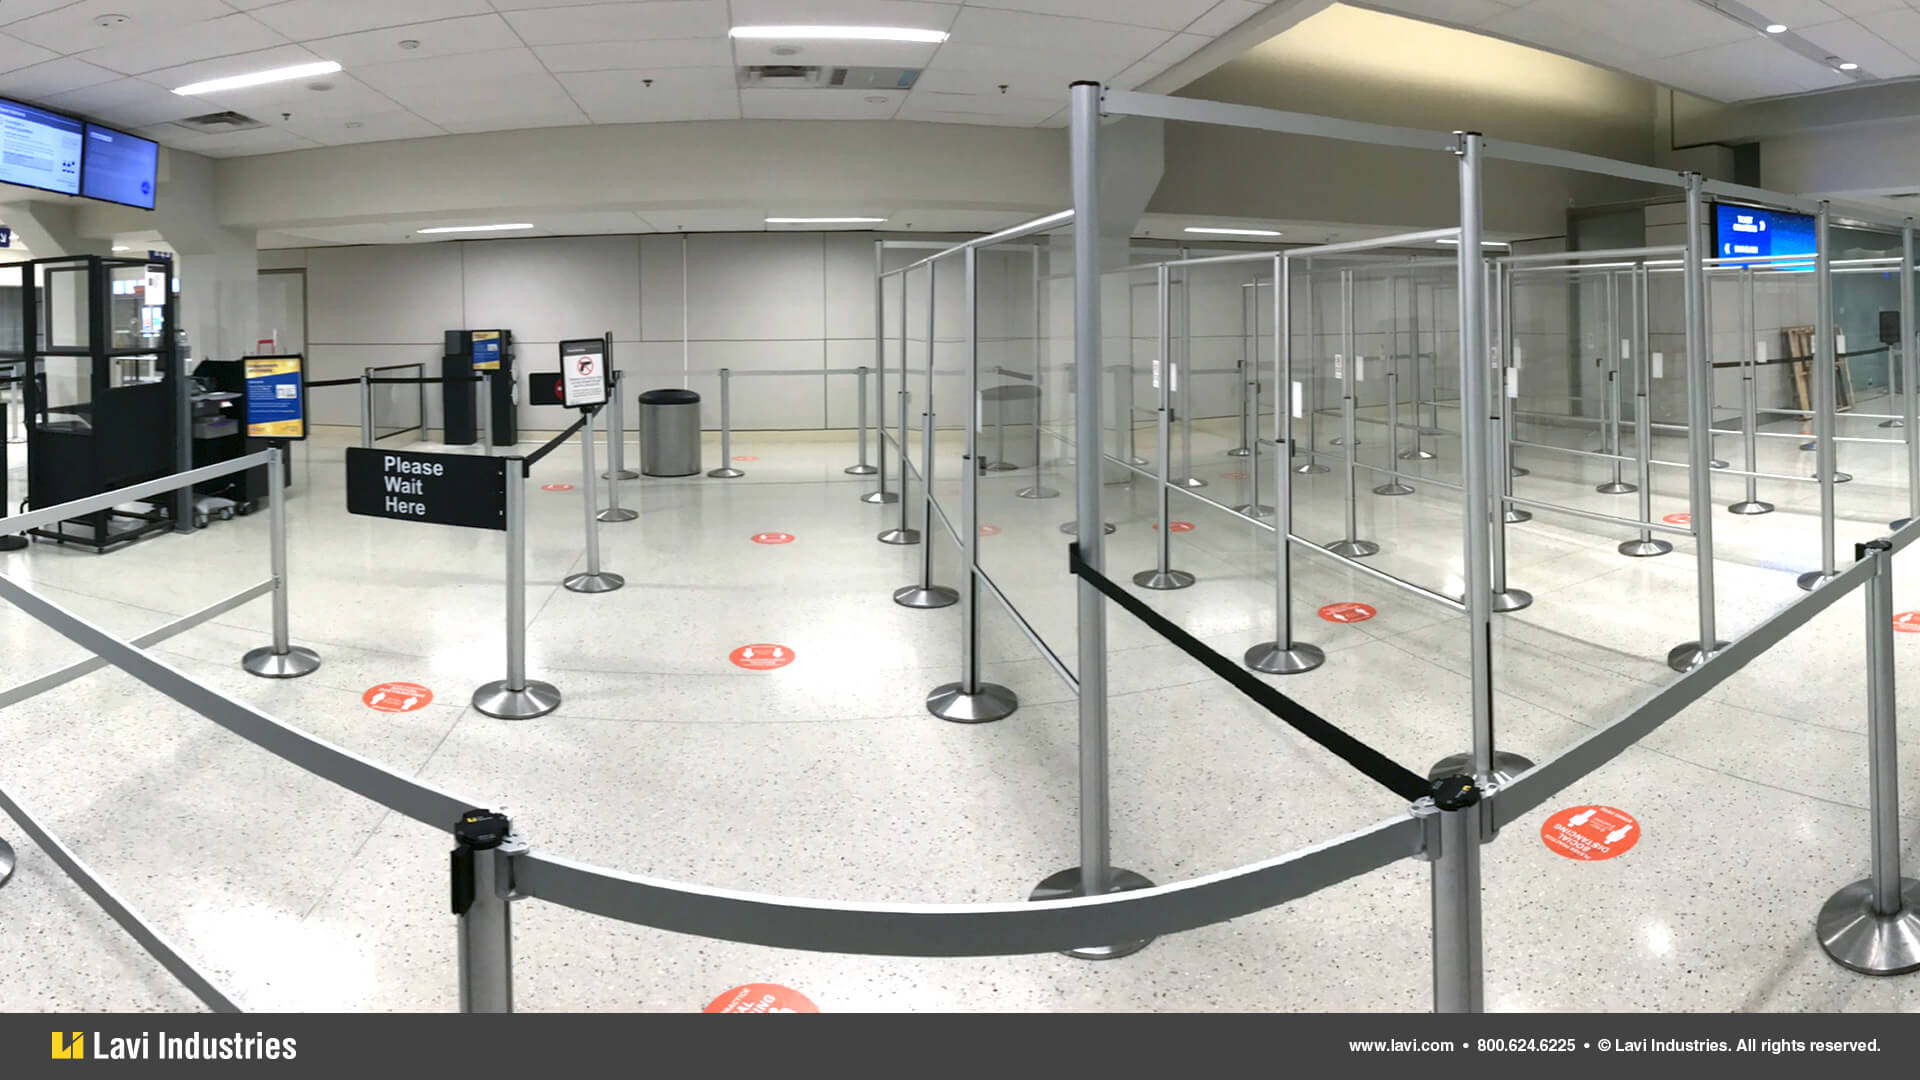 Airport,Barriers,Queuing,Signage,SocialDistancing,RigidRail,Stanchions,SwingGate,QueueGuard